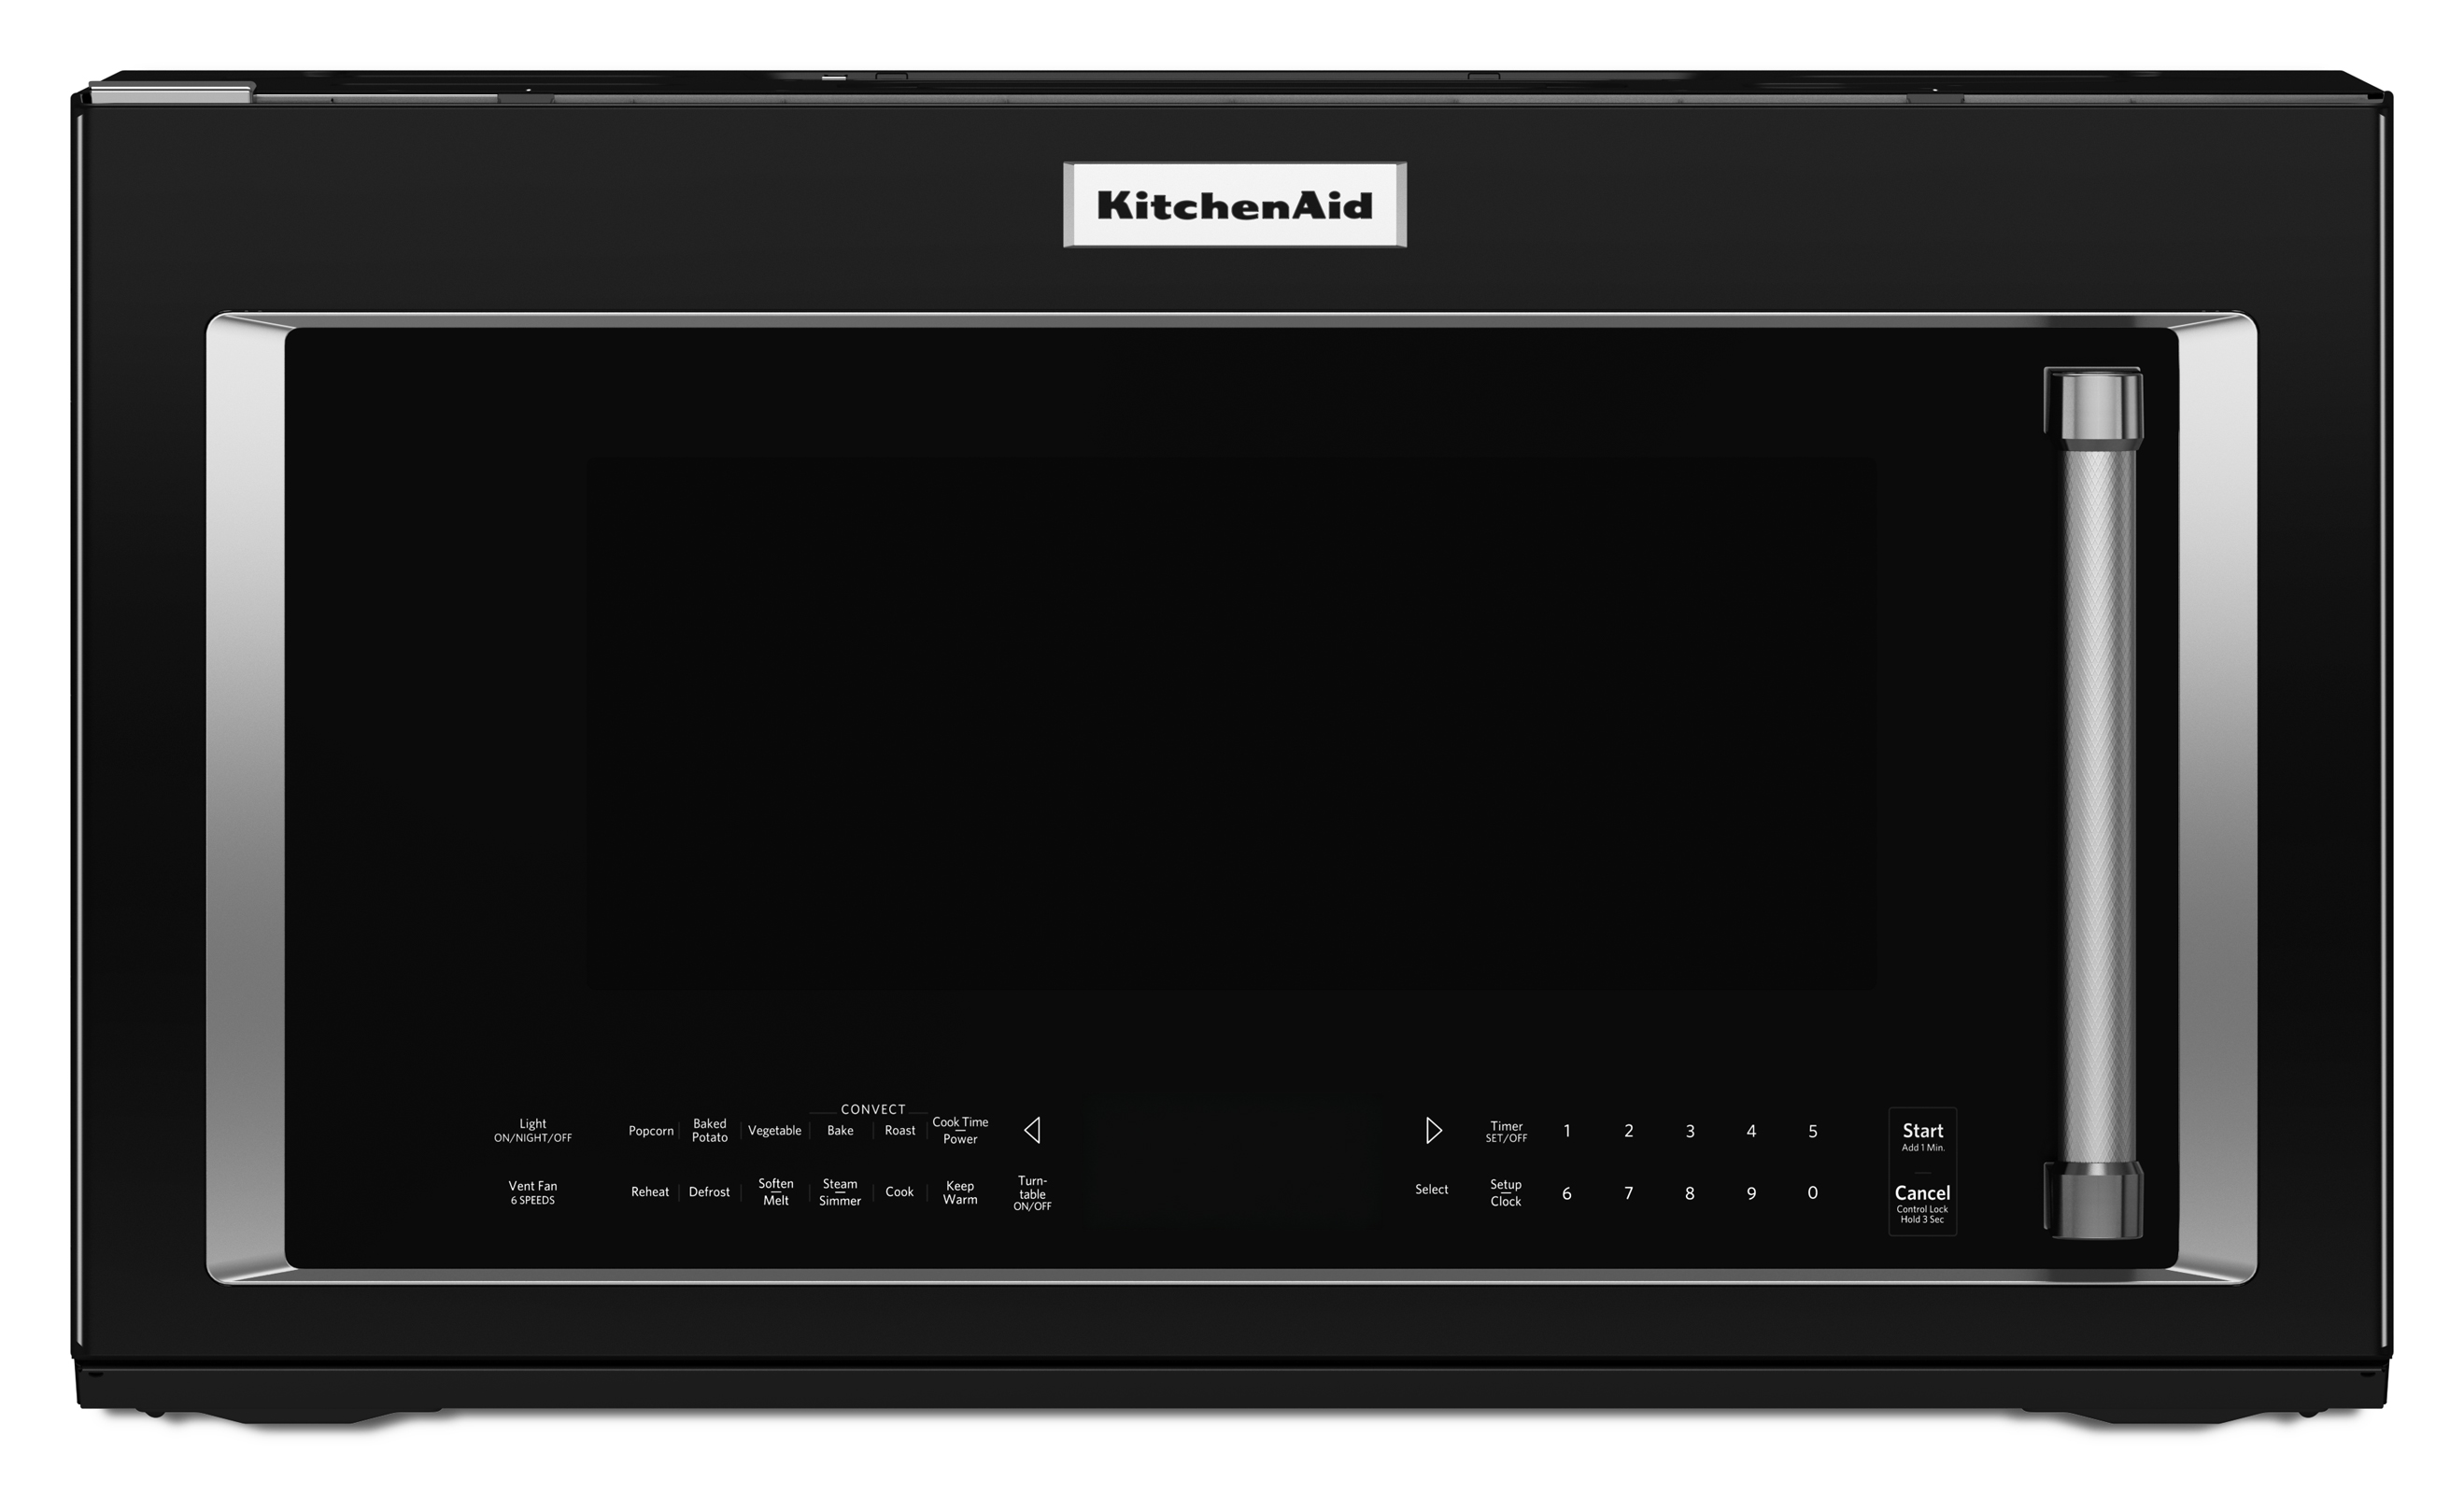 KitchenAid KMHC319EBL 1.9 cu. ft. 1000W Convection Microwave Oven - Black